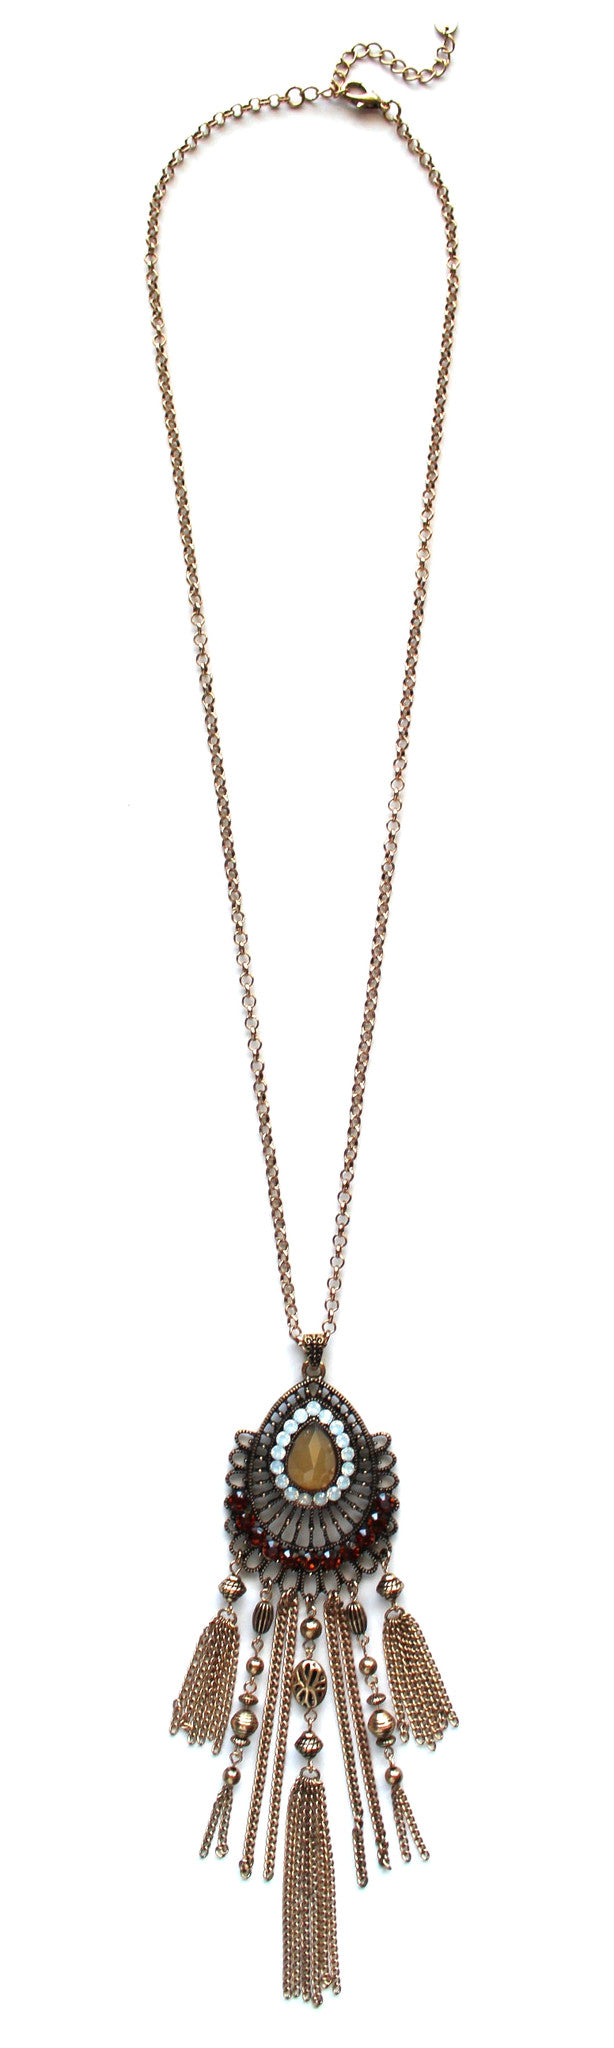 Dreams Come True Jeweled Long Necklace